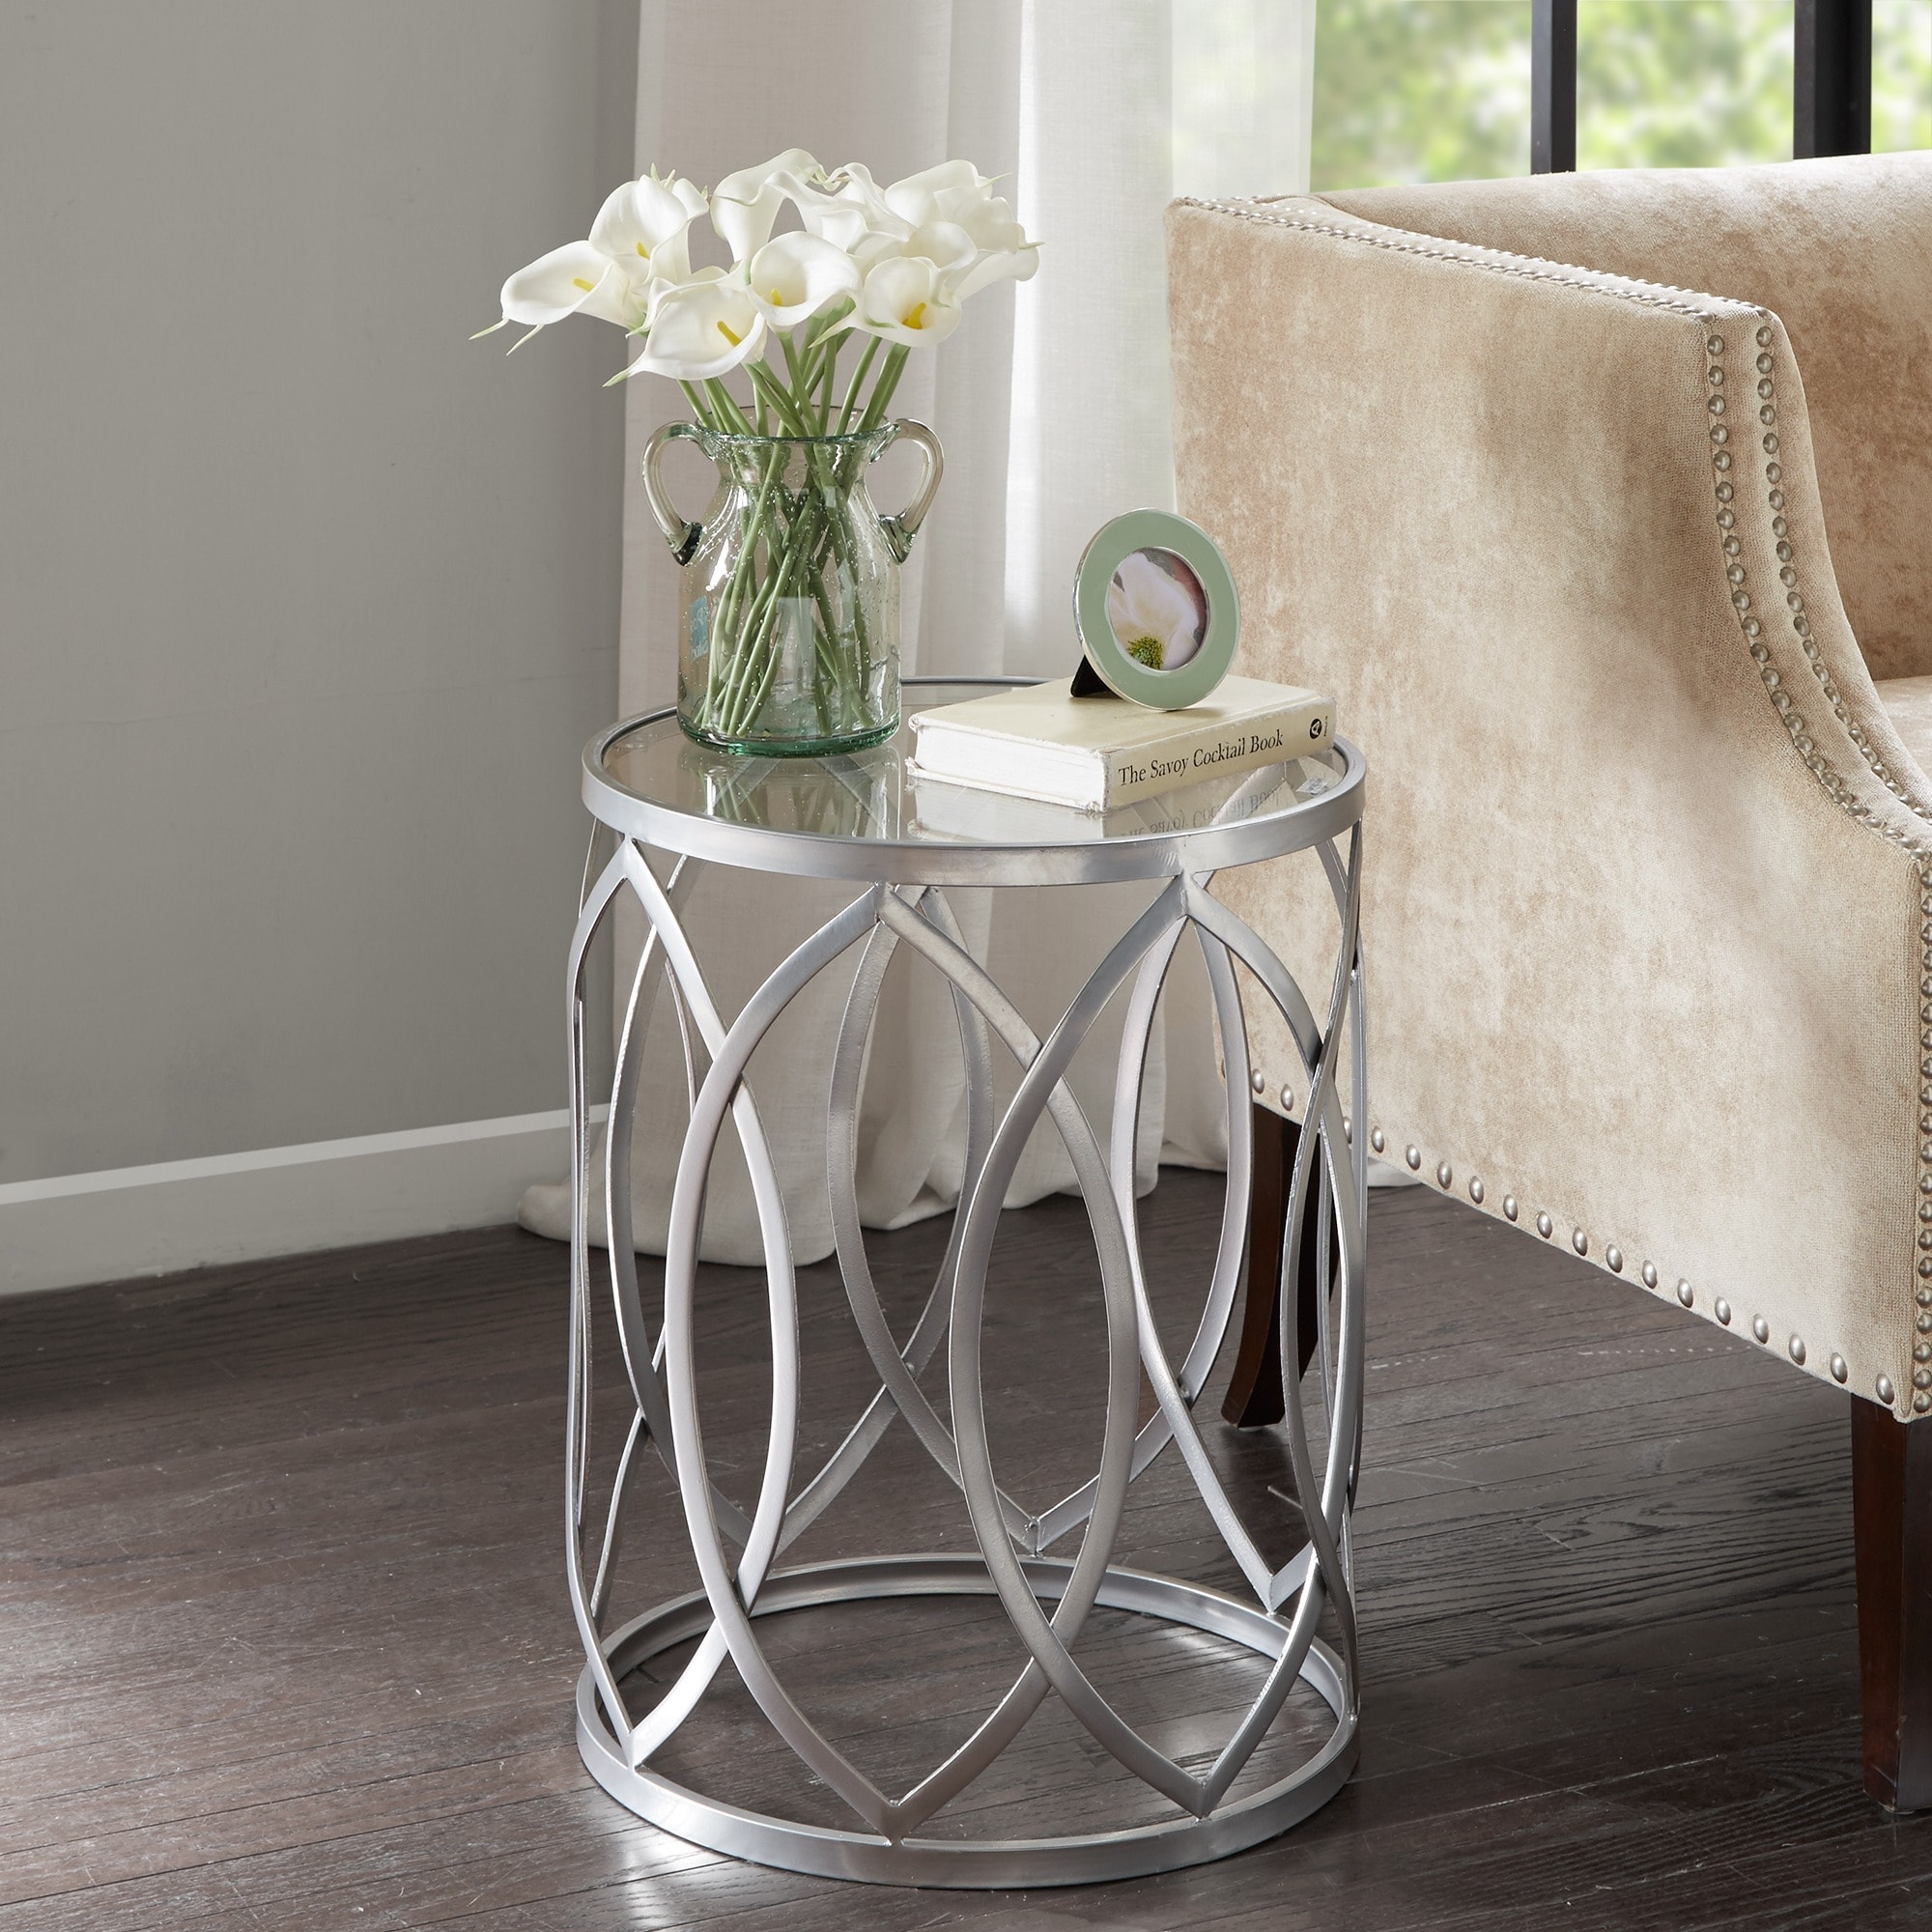 madison park coen metal eyelet accent drum table free style end tables shipping today oak with drawers nice coffee jcpenney marshalls home goods rugs brass phone charging aluminum